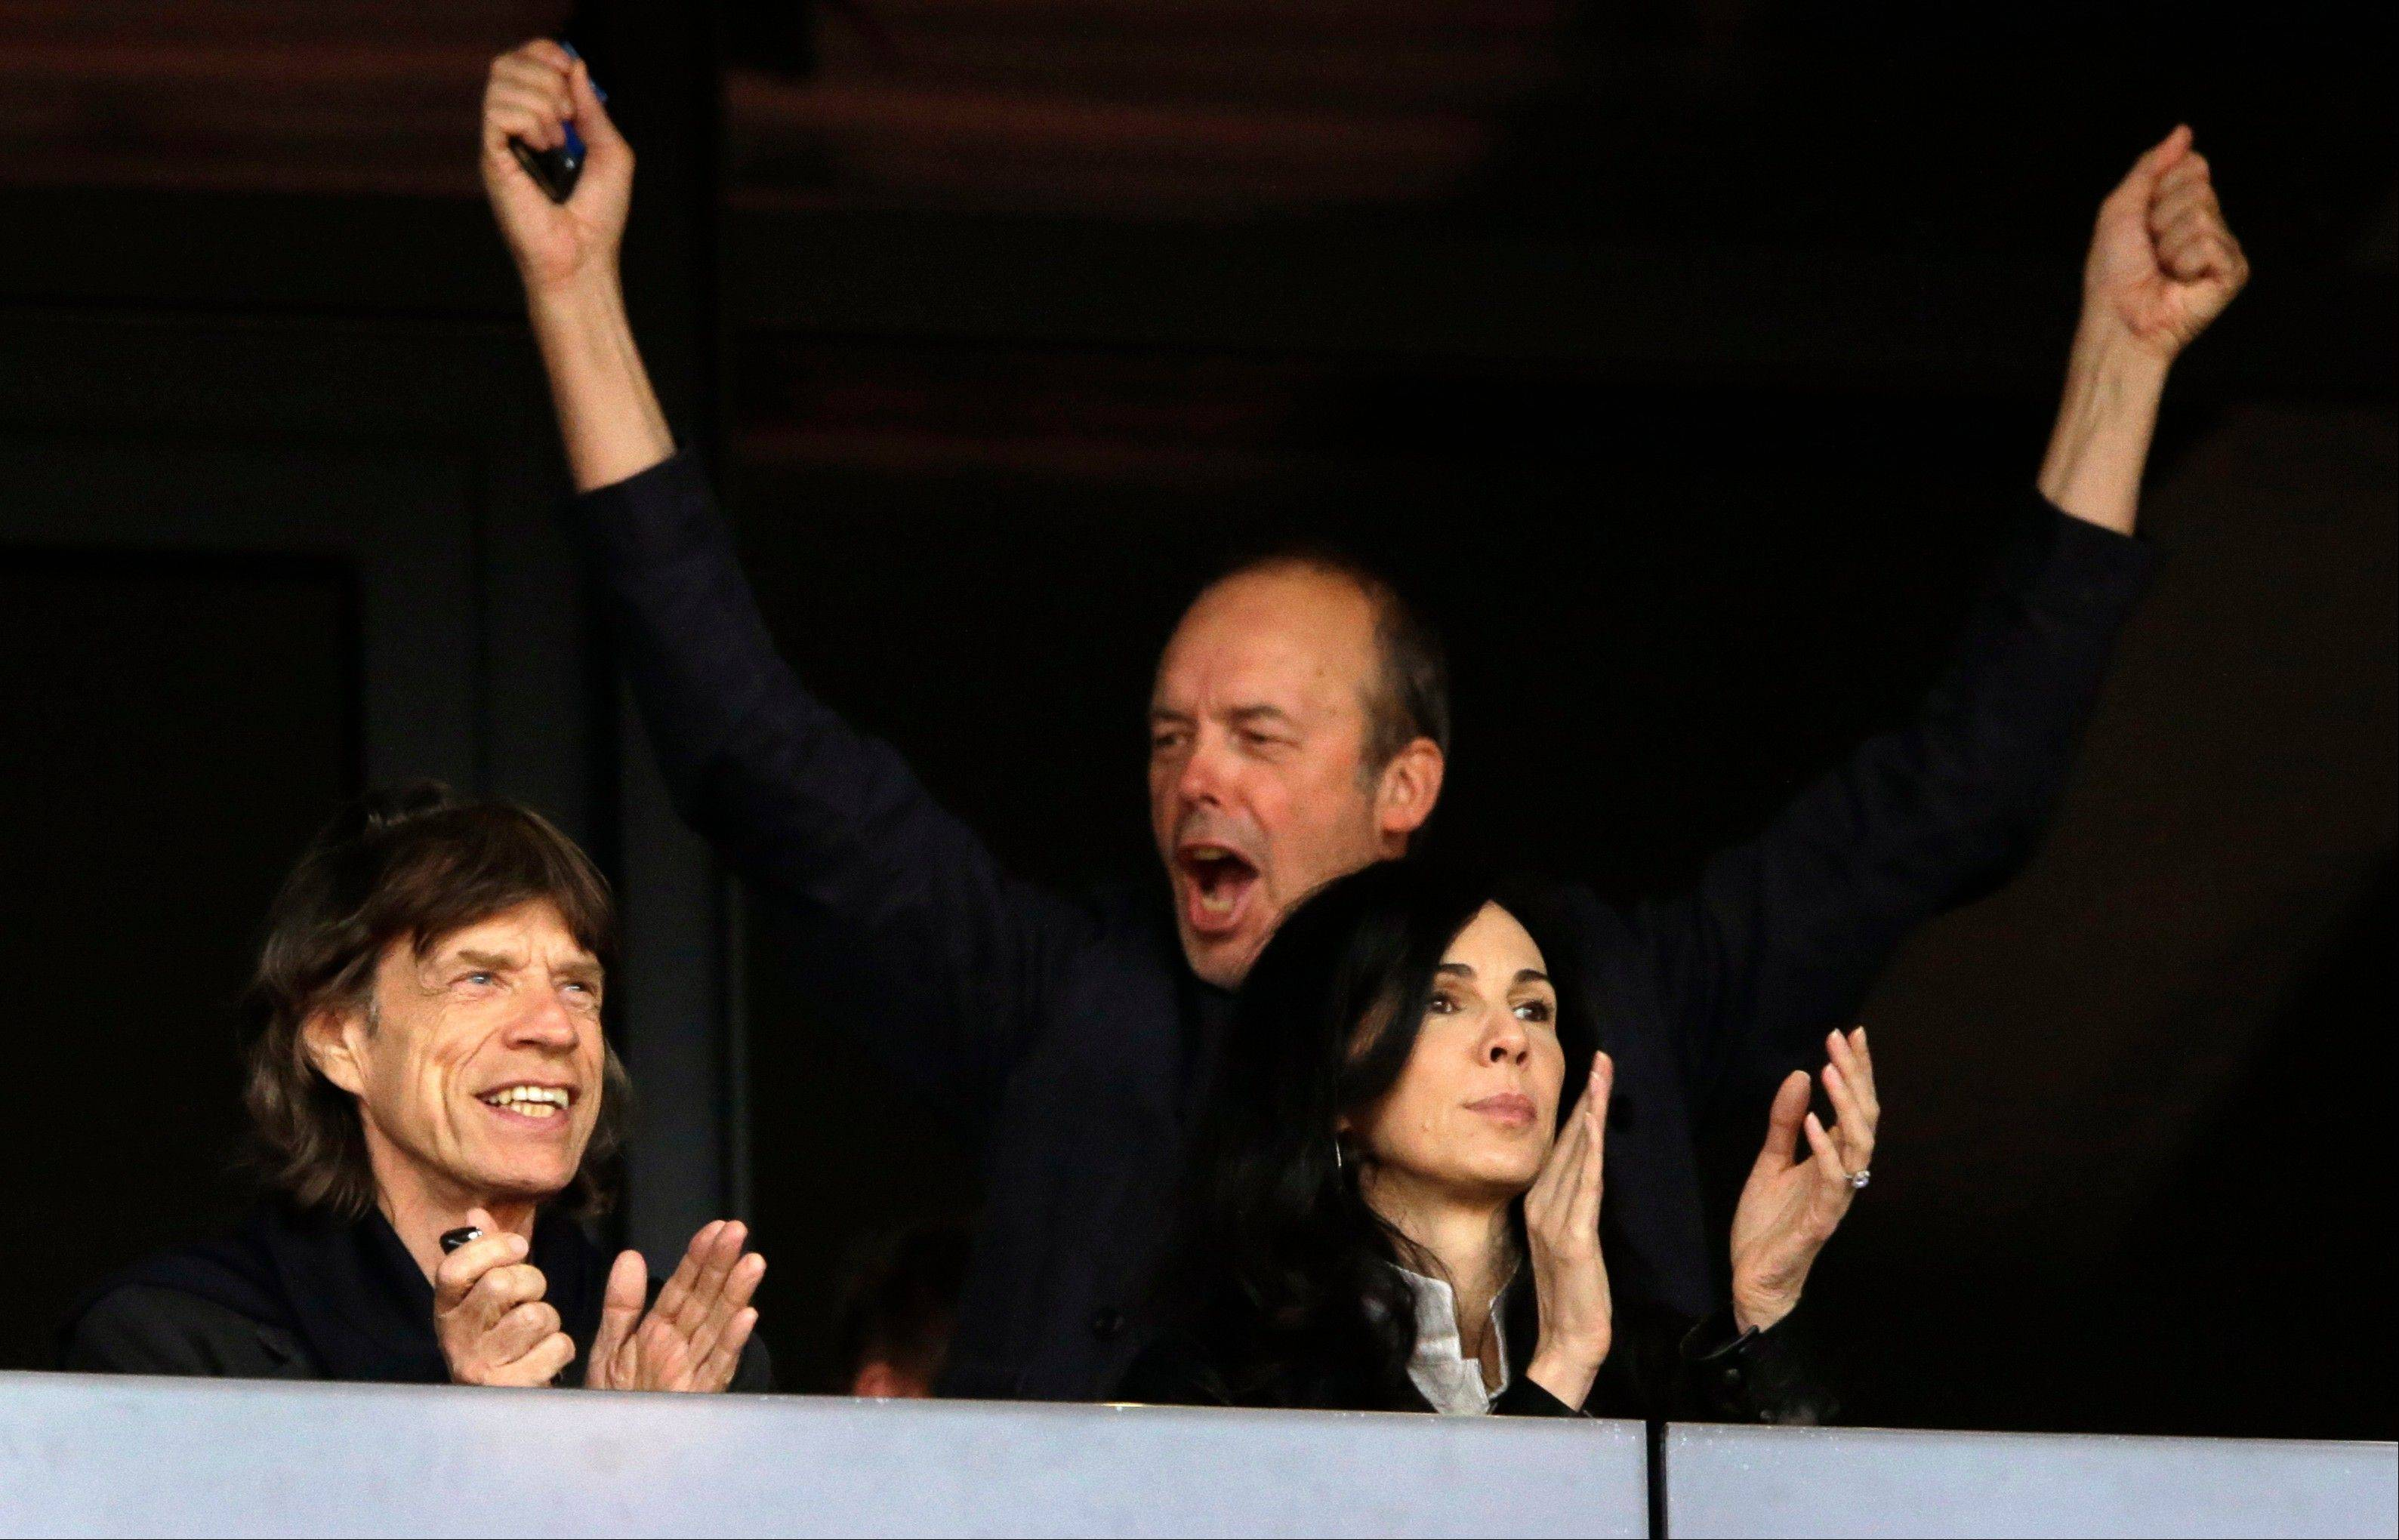 Musician Mick Jagger, left, Monday watches an evening session of athletics competition with L'Wren Scott, right, in the Olympic Stadium at the 2012 Summer Olympics.